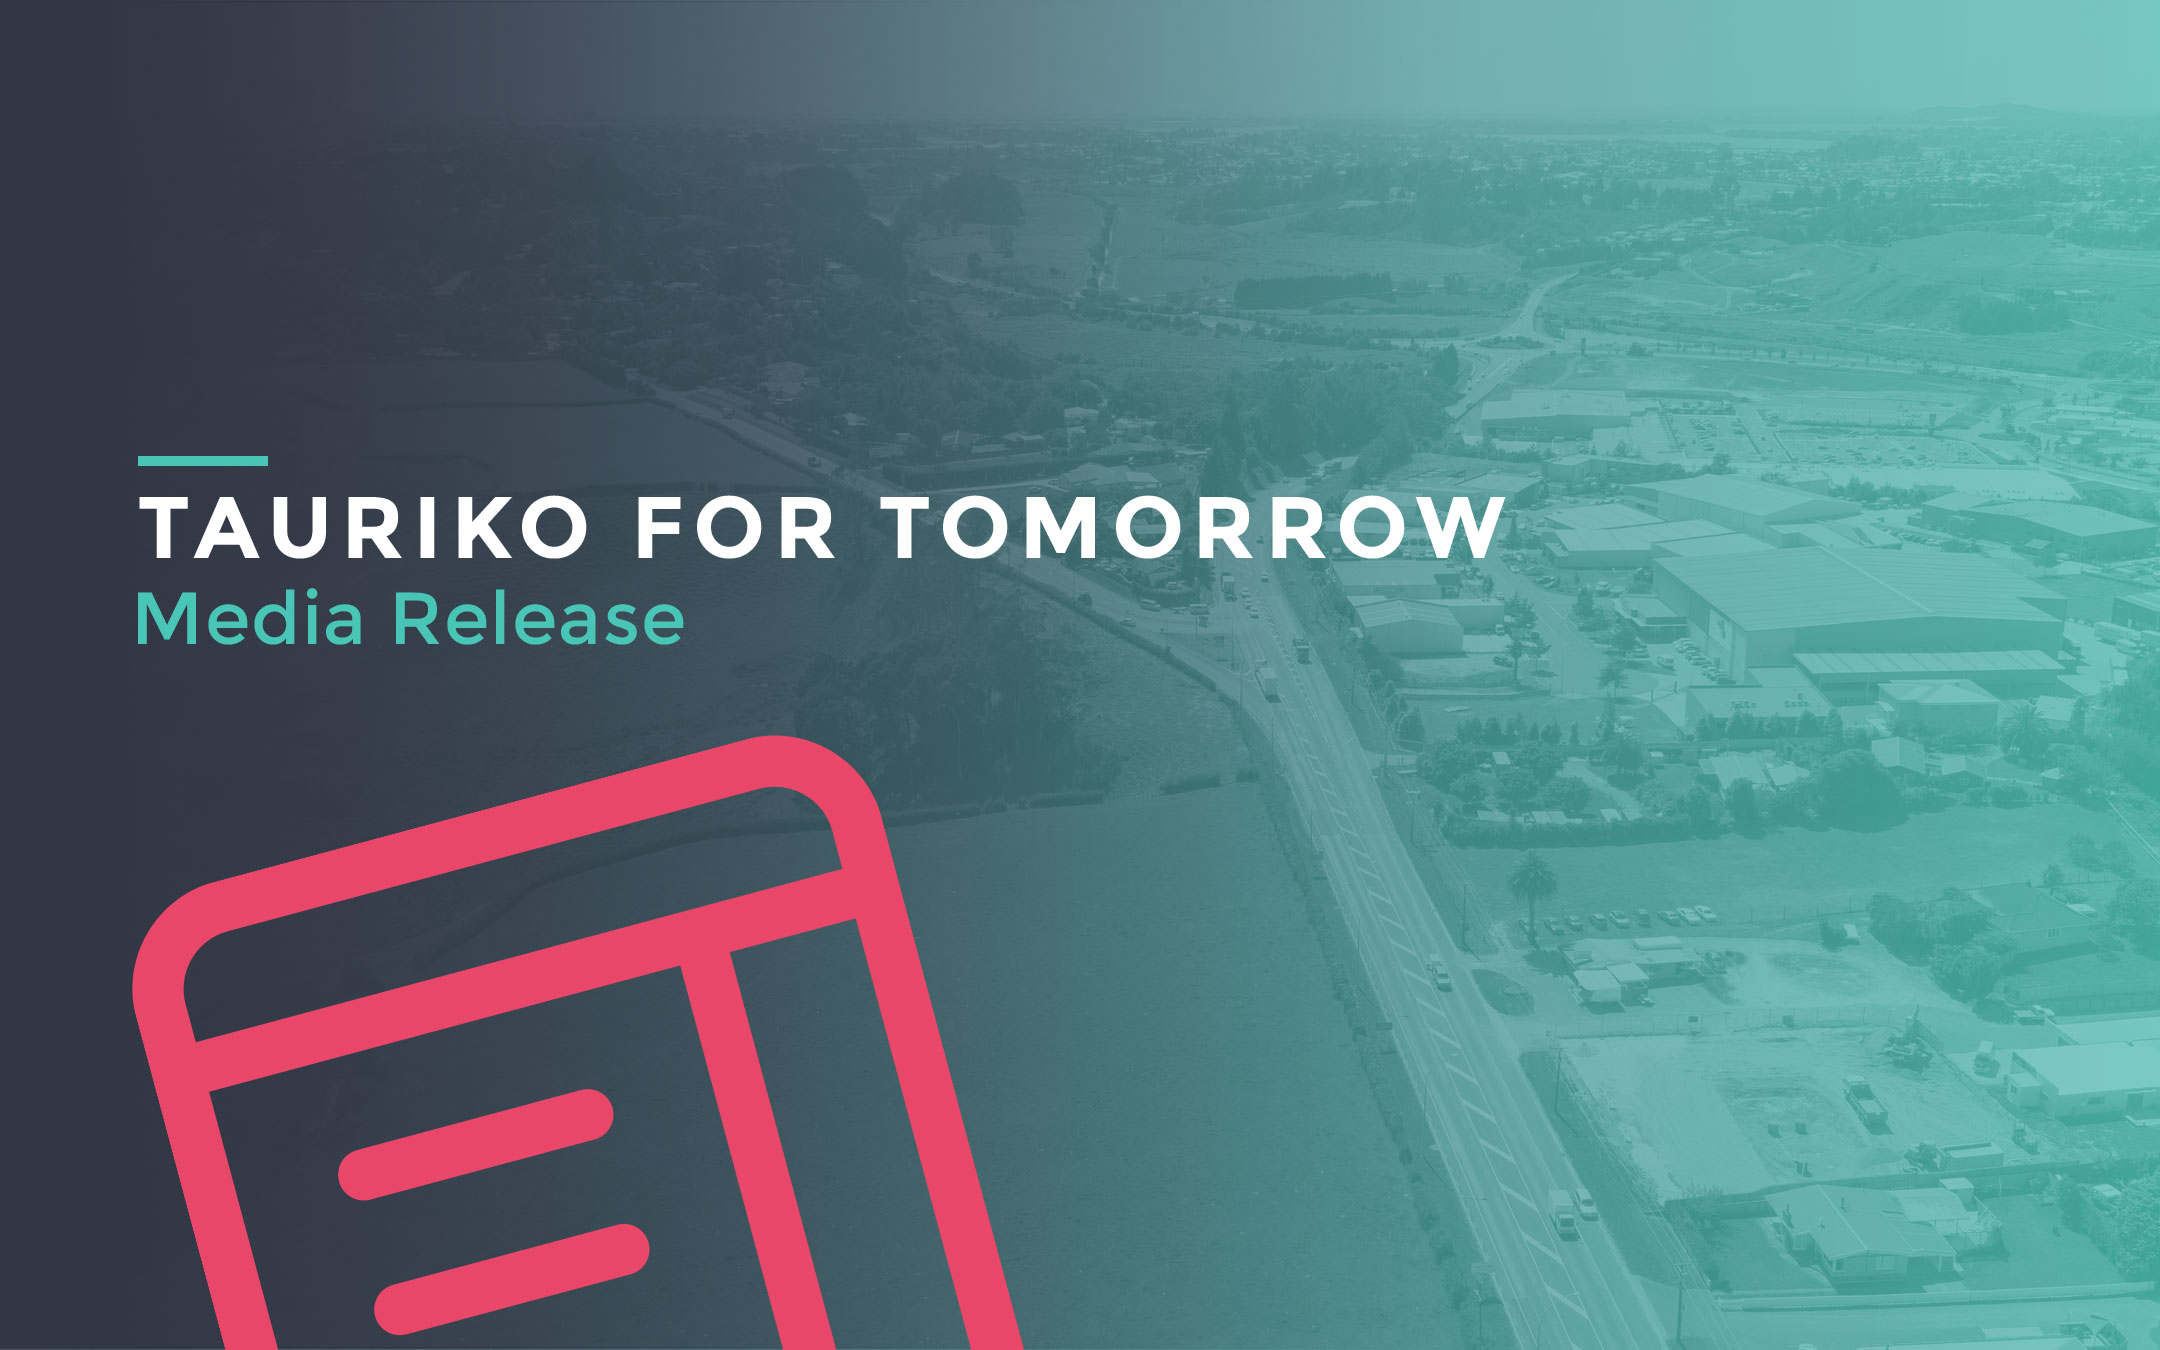 Sharing the Vision of Tauriko for Tomorrow